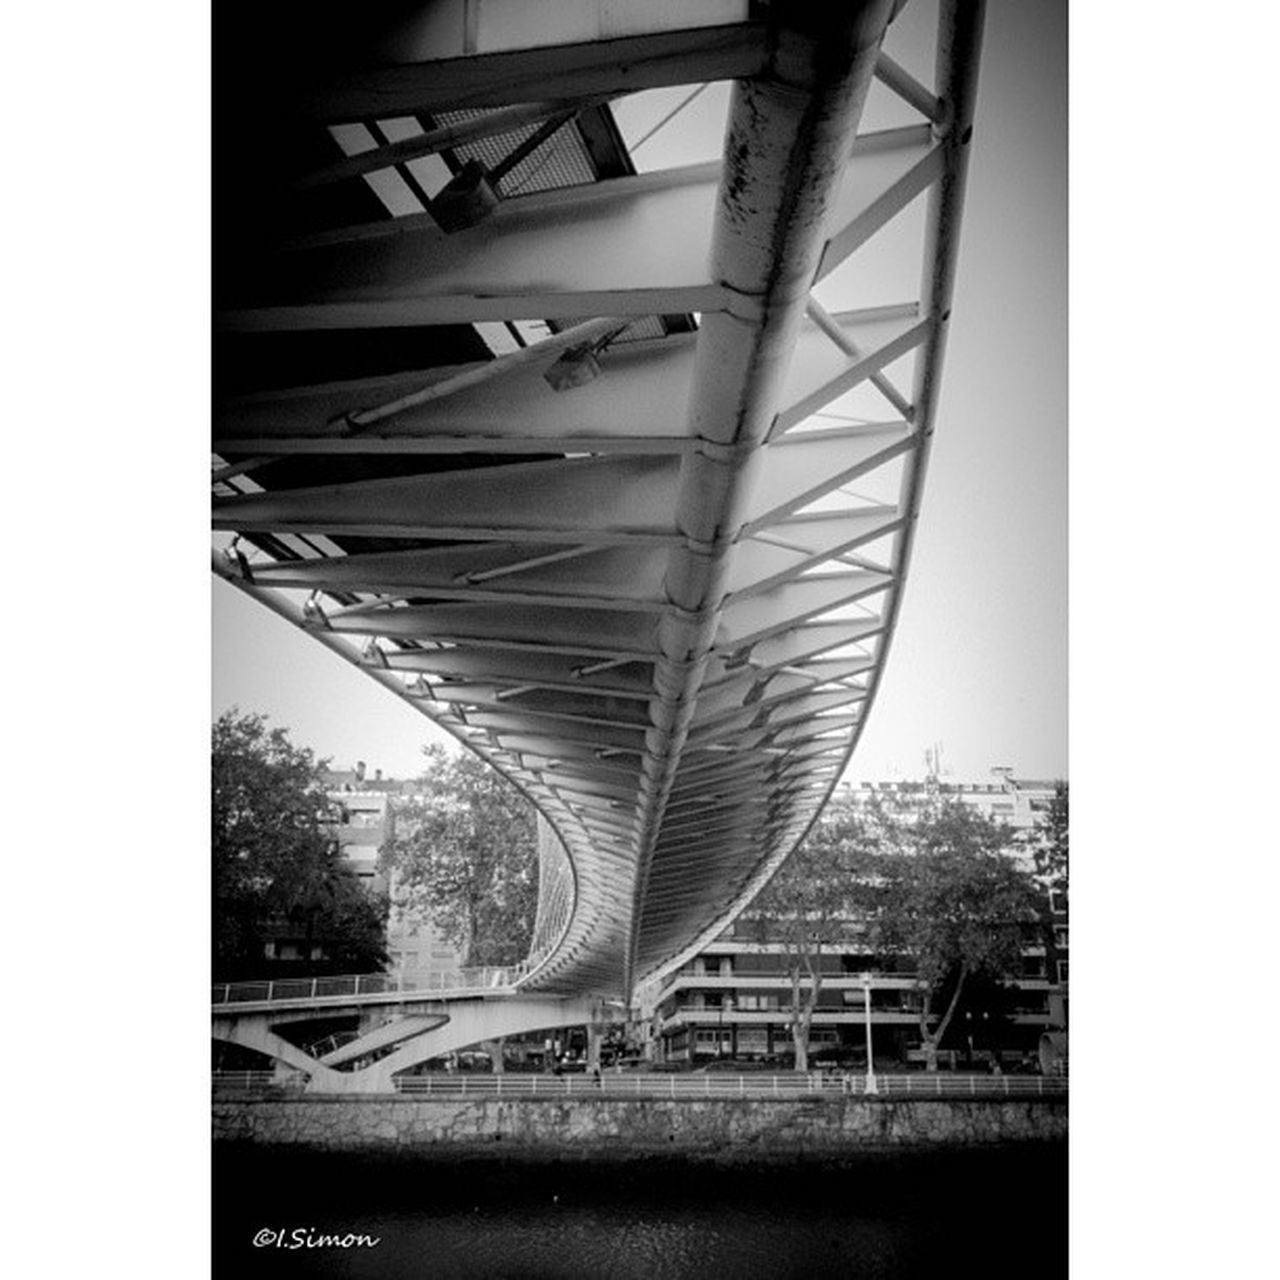 architecture, bridge - man made structure, connection, built structure, no people, outdoors, transportation, underneath, day, bridge, clear sky, tree, city, steel, building exterior, sky